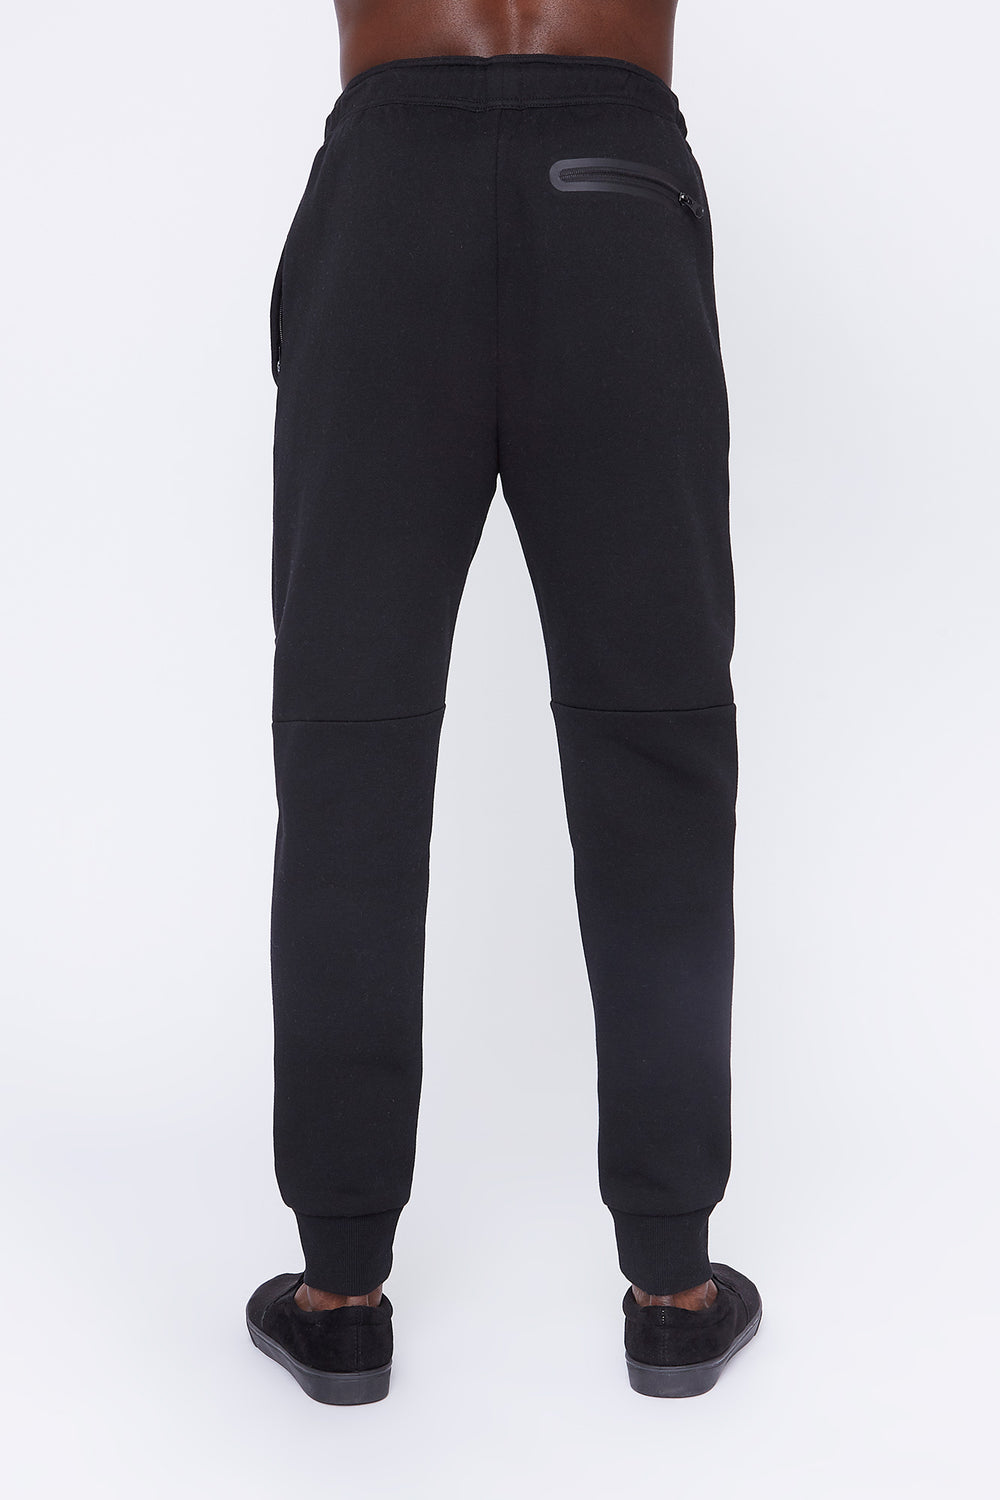 West49 Mens Spacedye Jogger Black